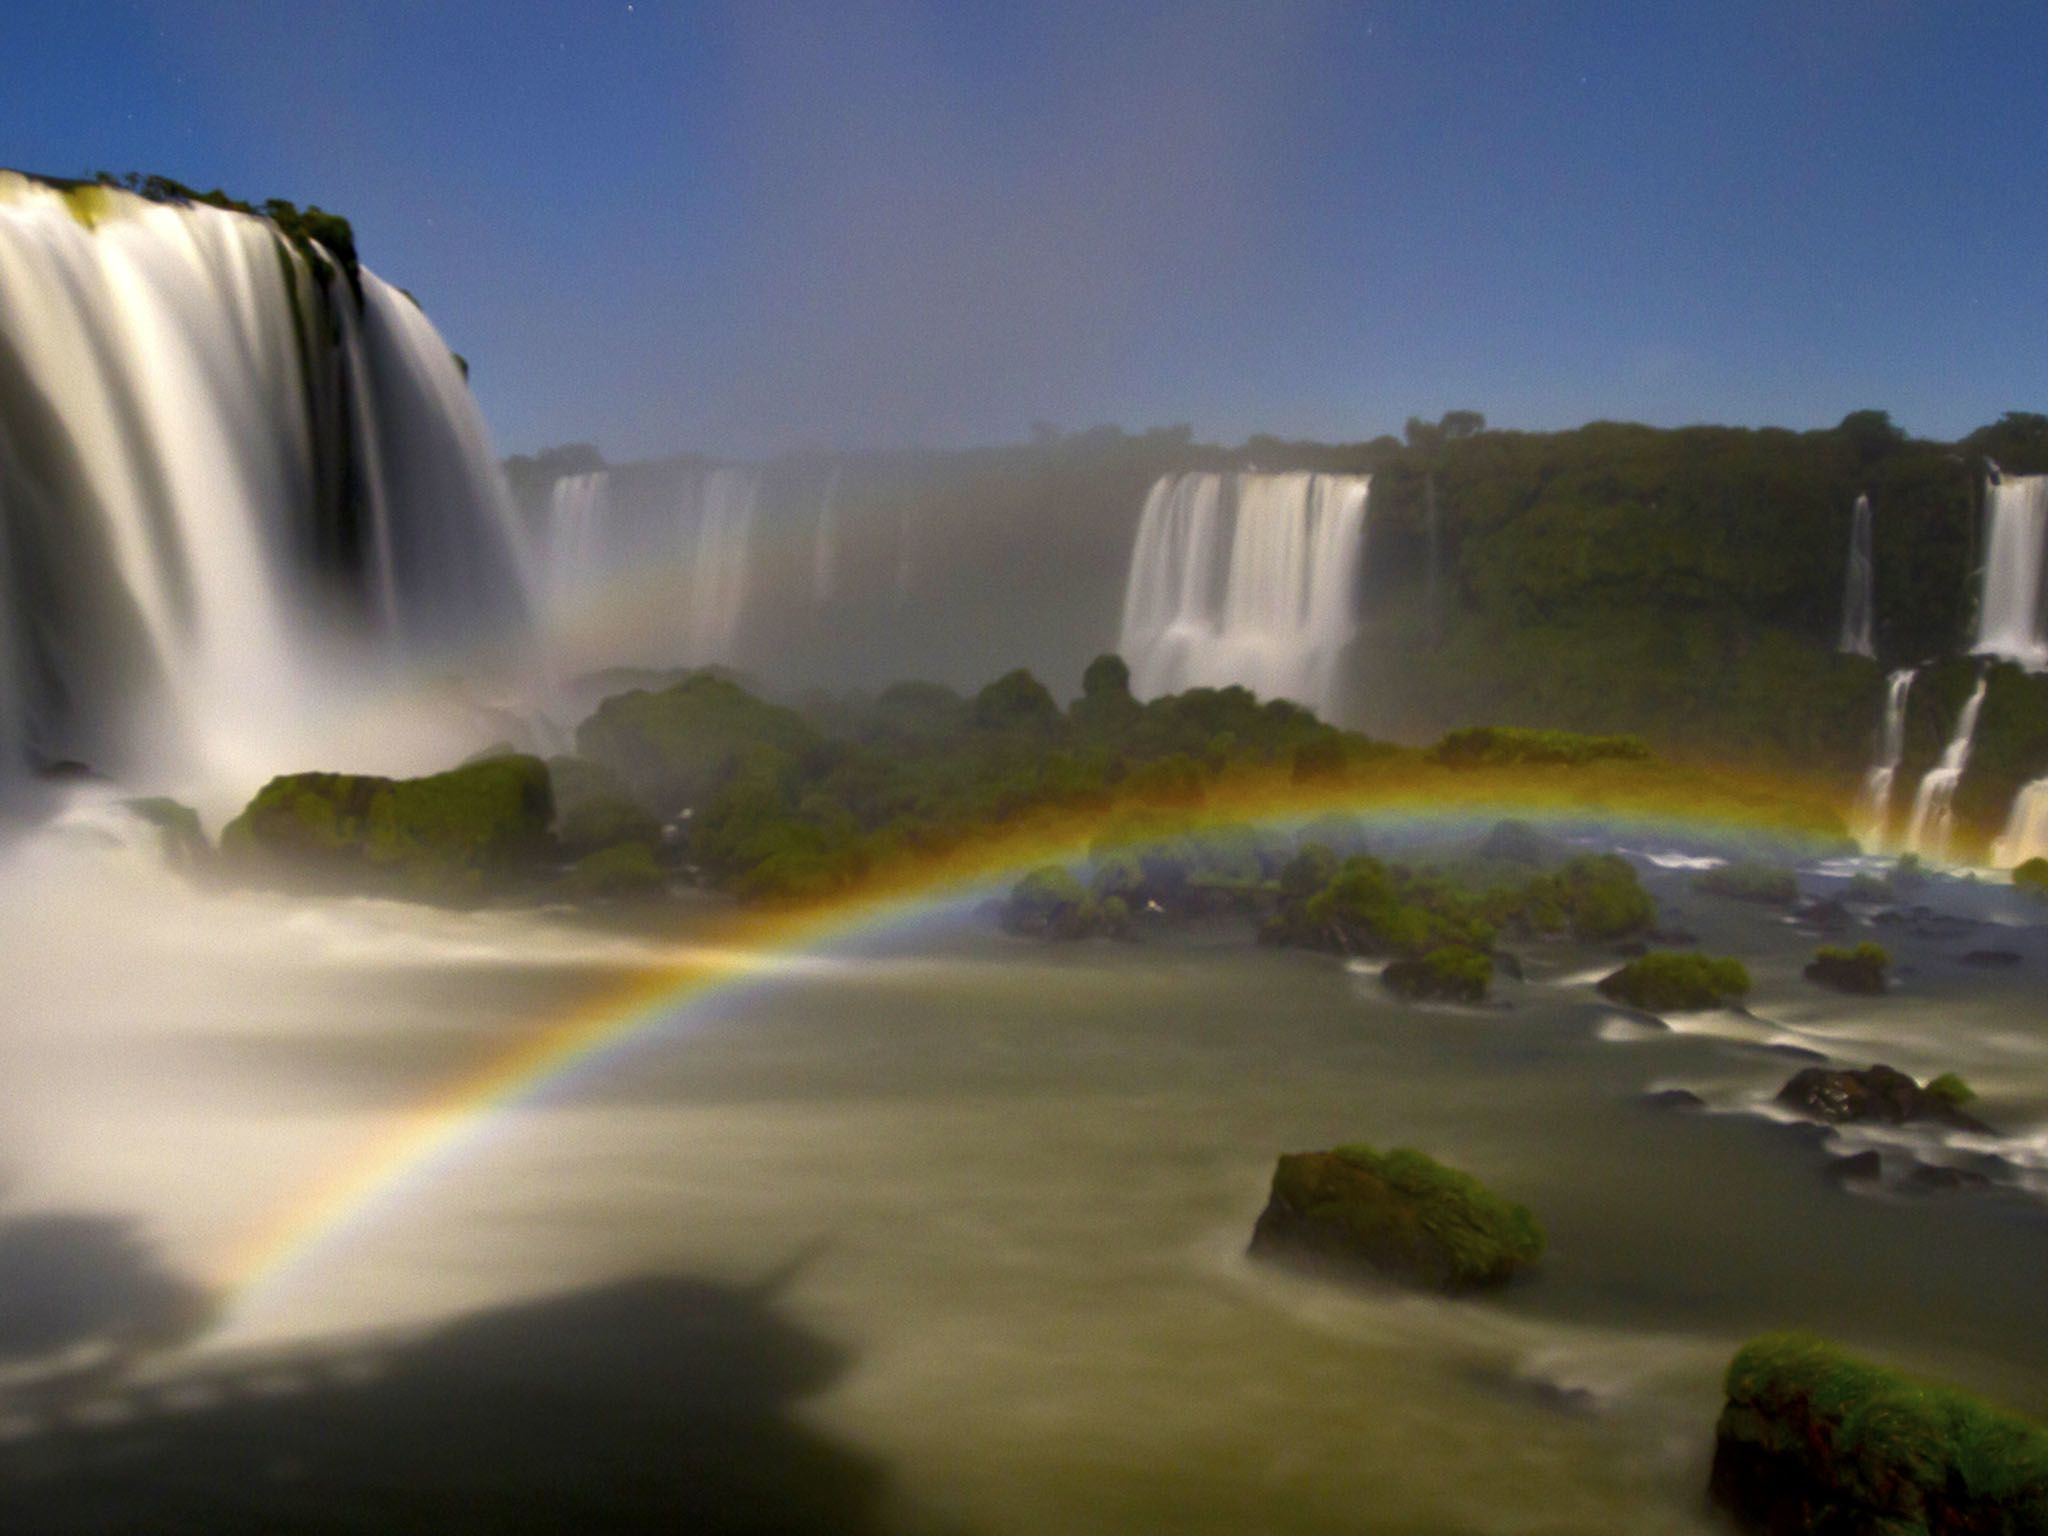 Iguazu Falls with rainbow in the mist. This image is from River in the Sky. [Photo of the day - December 2016]